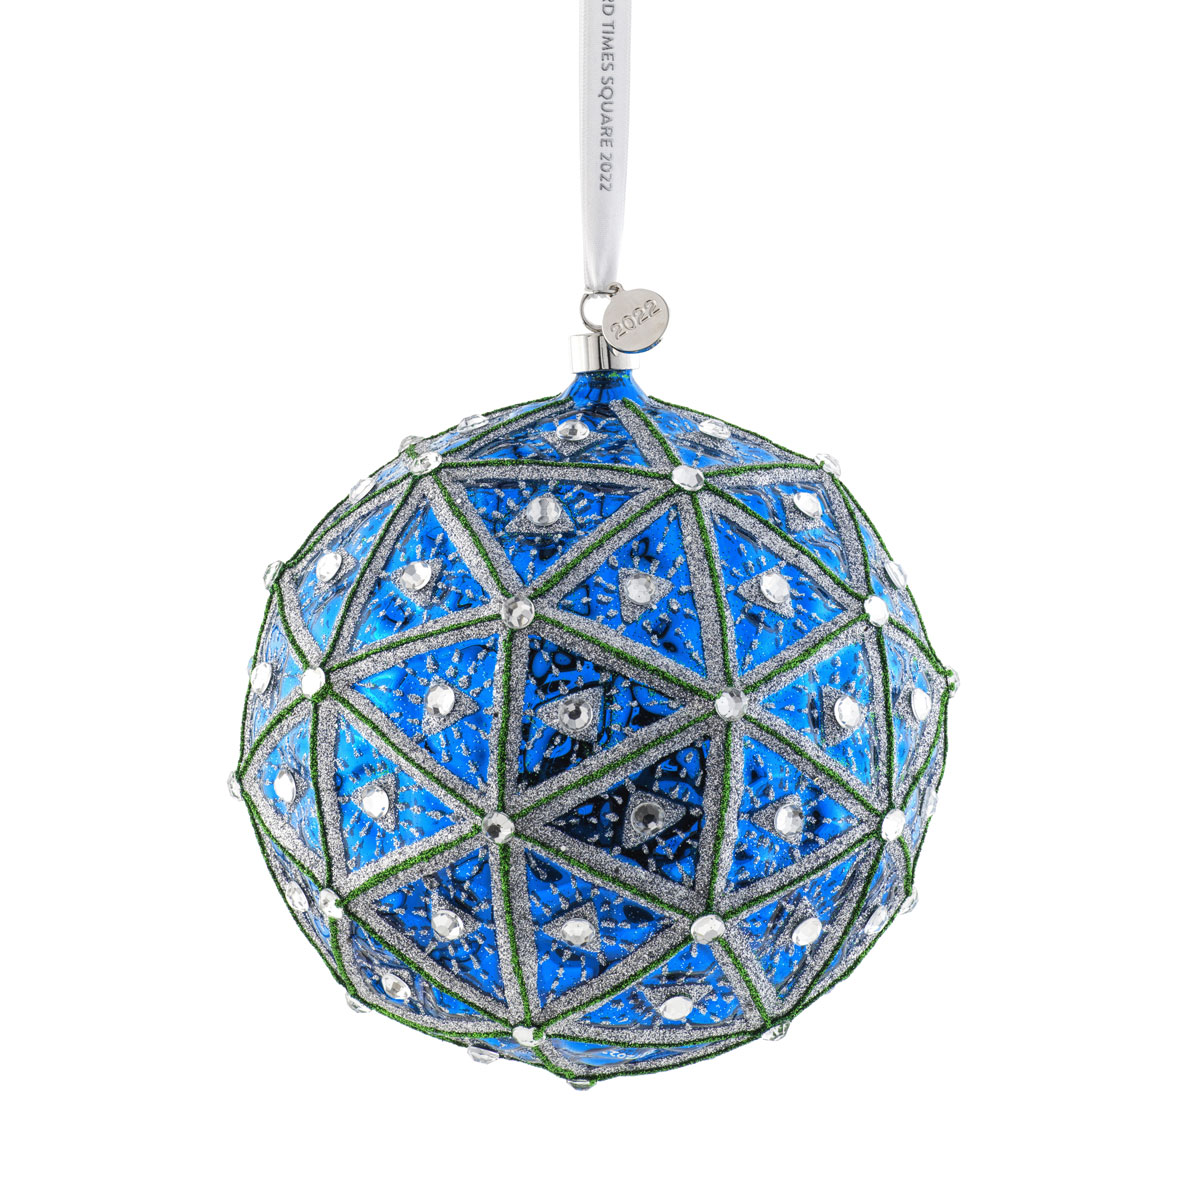 Waterford Crystal Times Square 2022 Gift of Wisdom Masterpiece Dated Ball Ornament